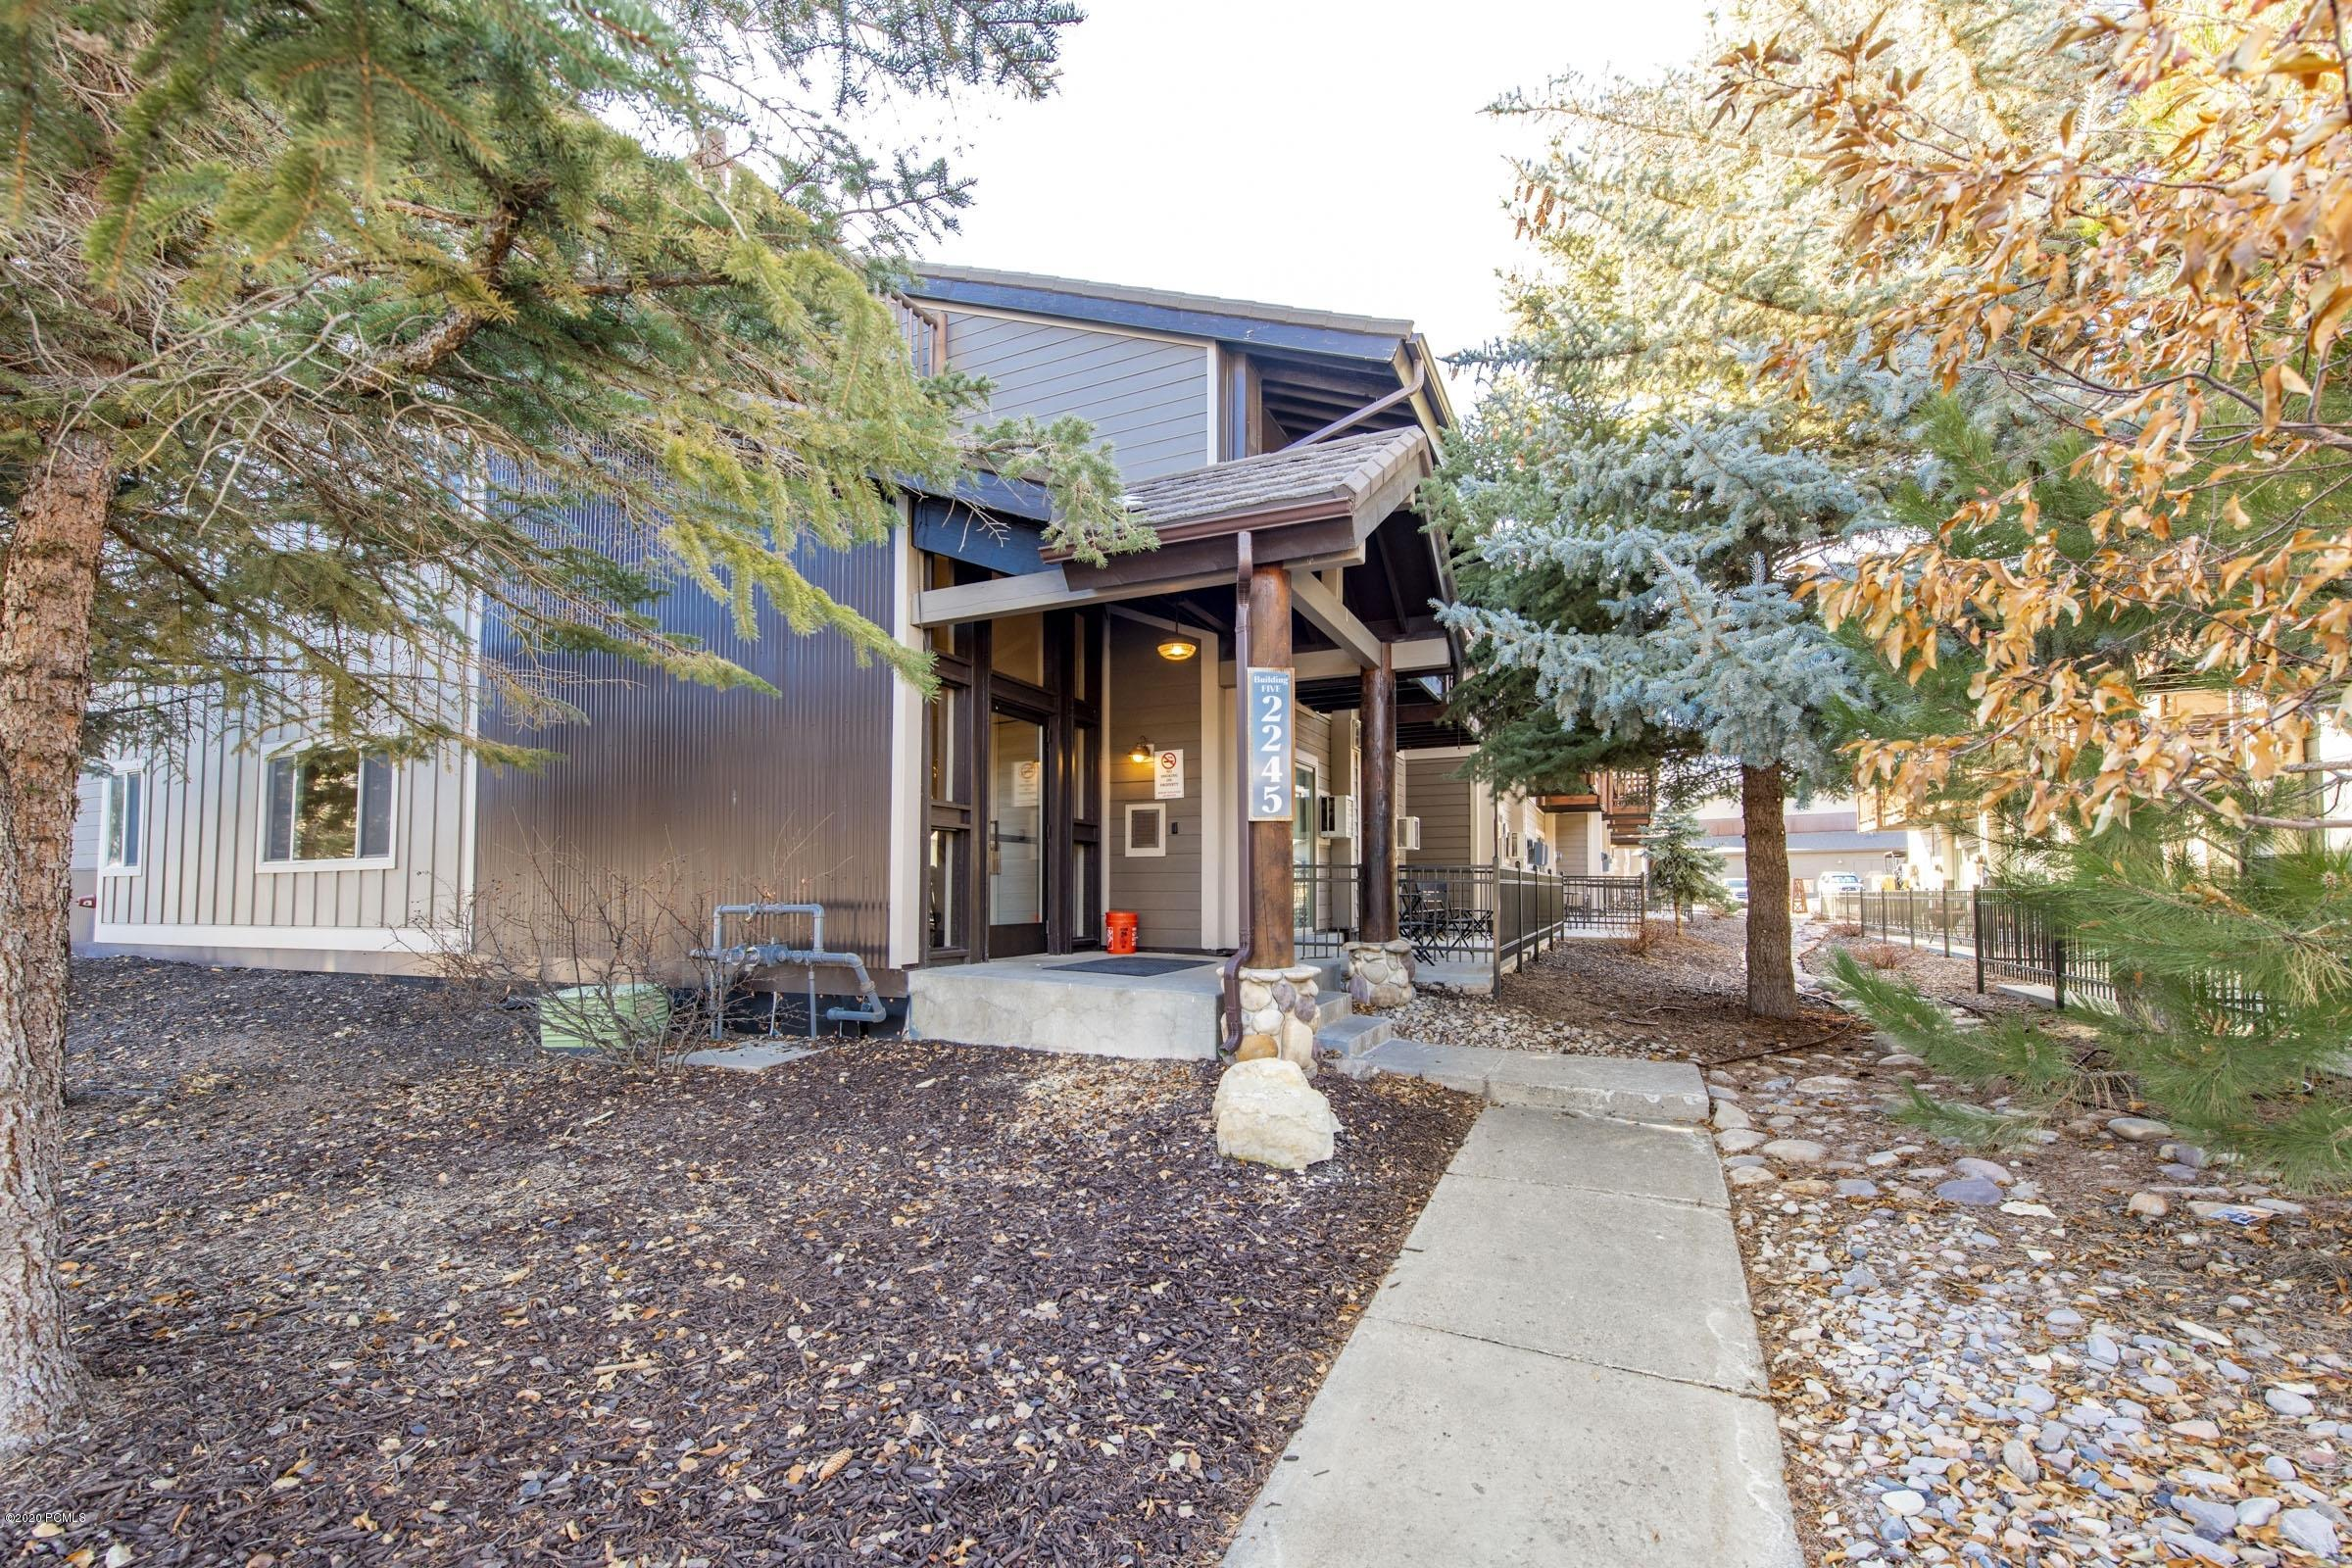 2245 Sidewinder Drive, Park City, Utah 84060, ,1 BathroomBathrooms,Condominium,For Sale,Sidewinder,12000616